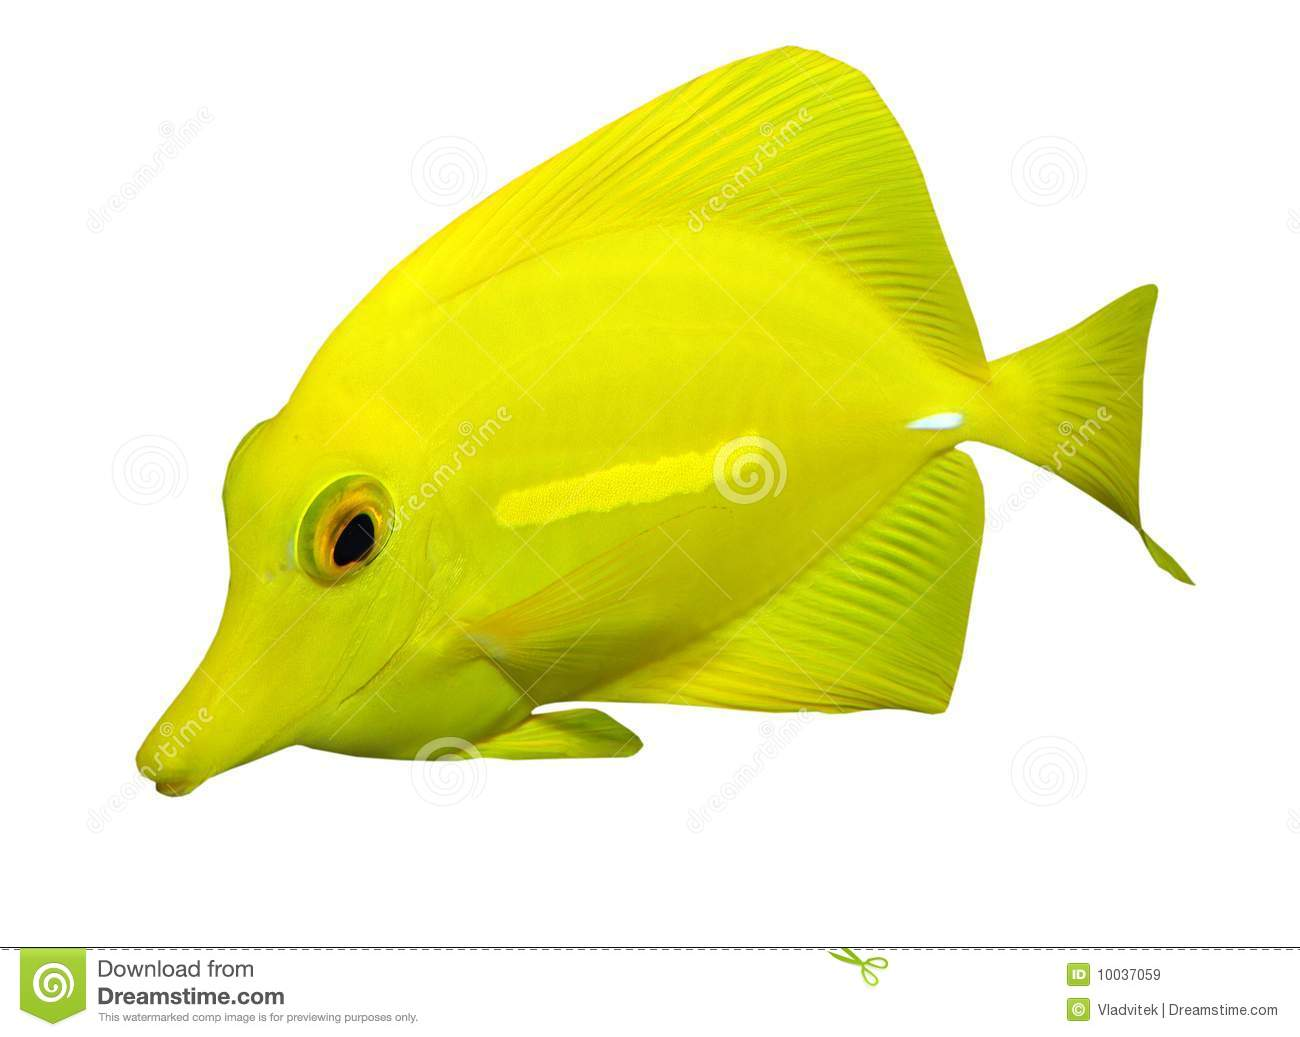 Tropical reef fish stock image image of multicolored for Image of fish